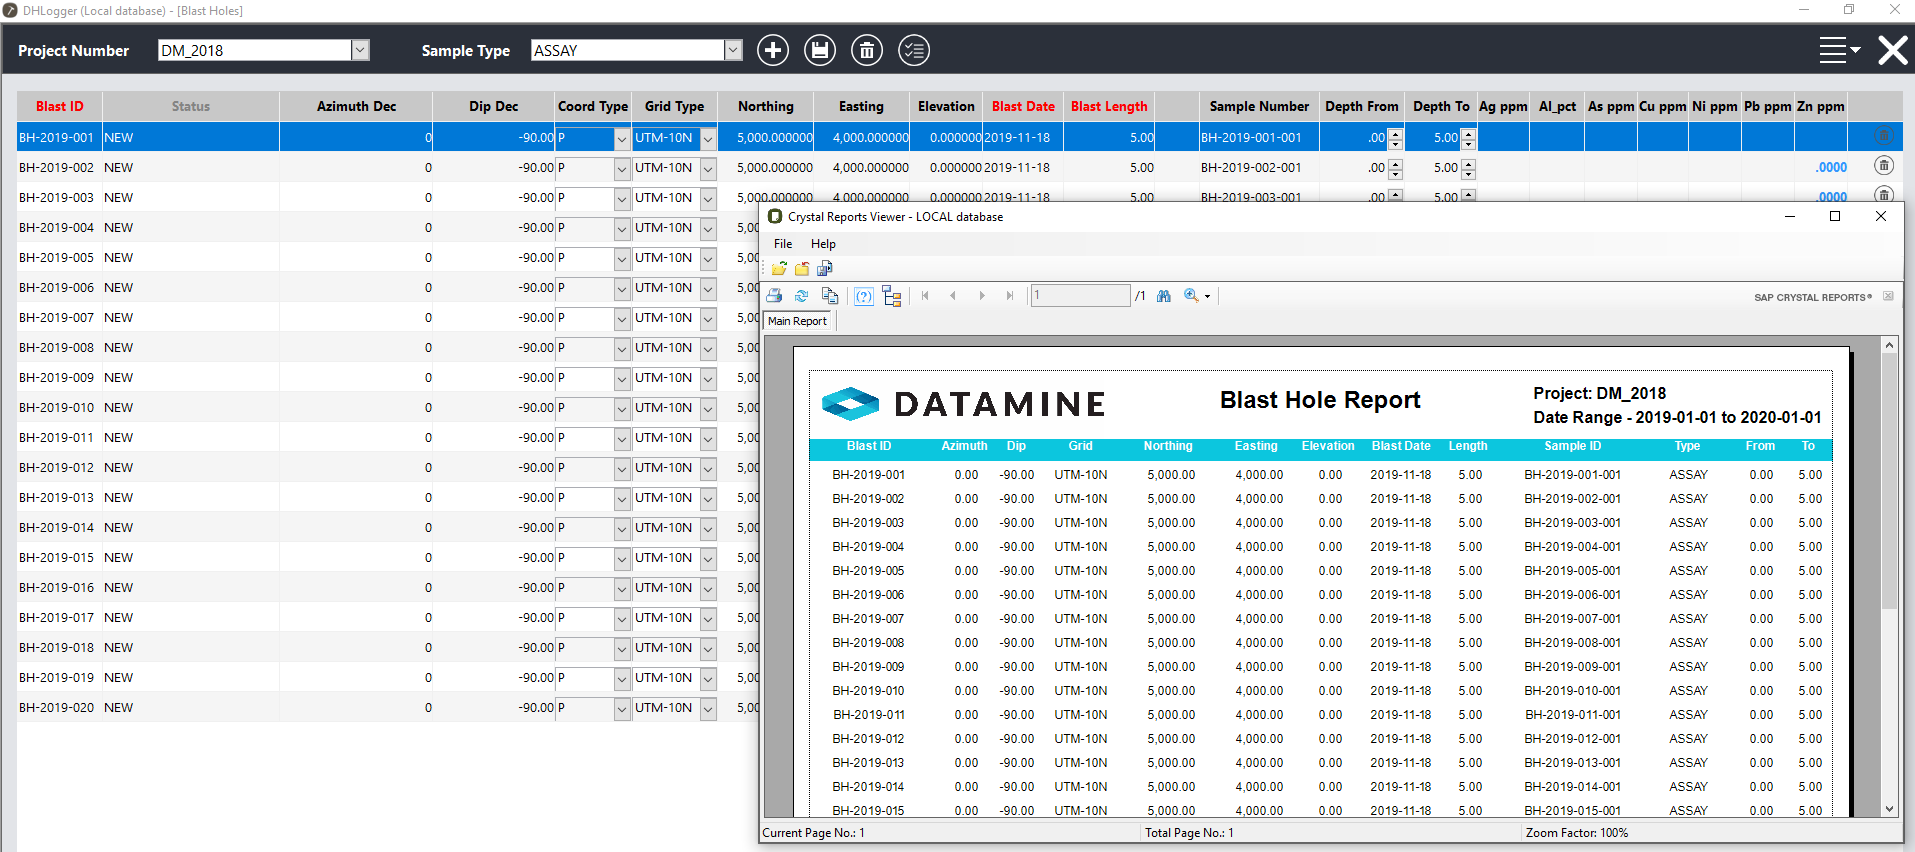 a blast hole report used for blast management within DHLogger, Fusion's drillhole management product.